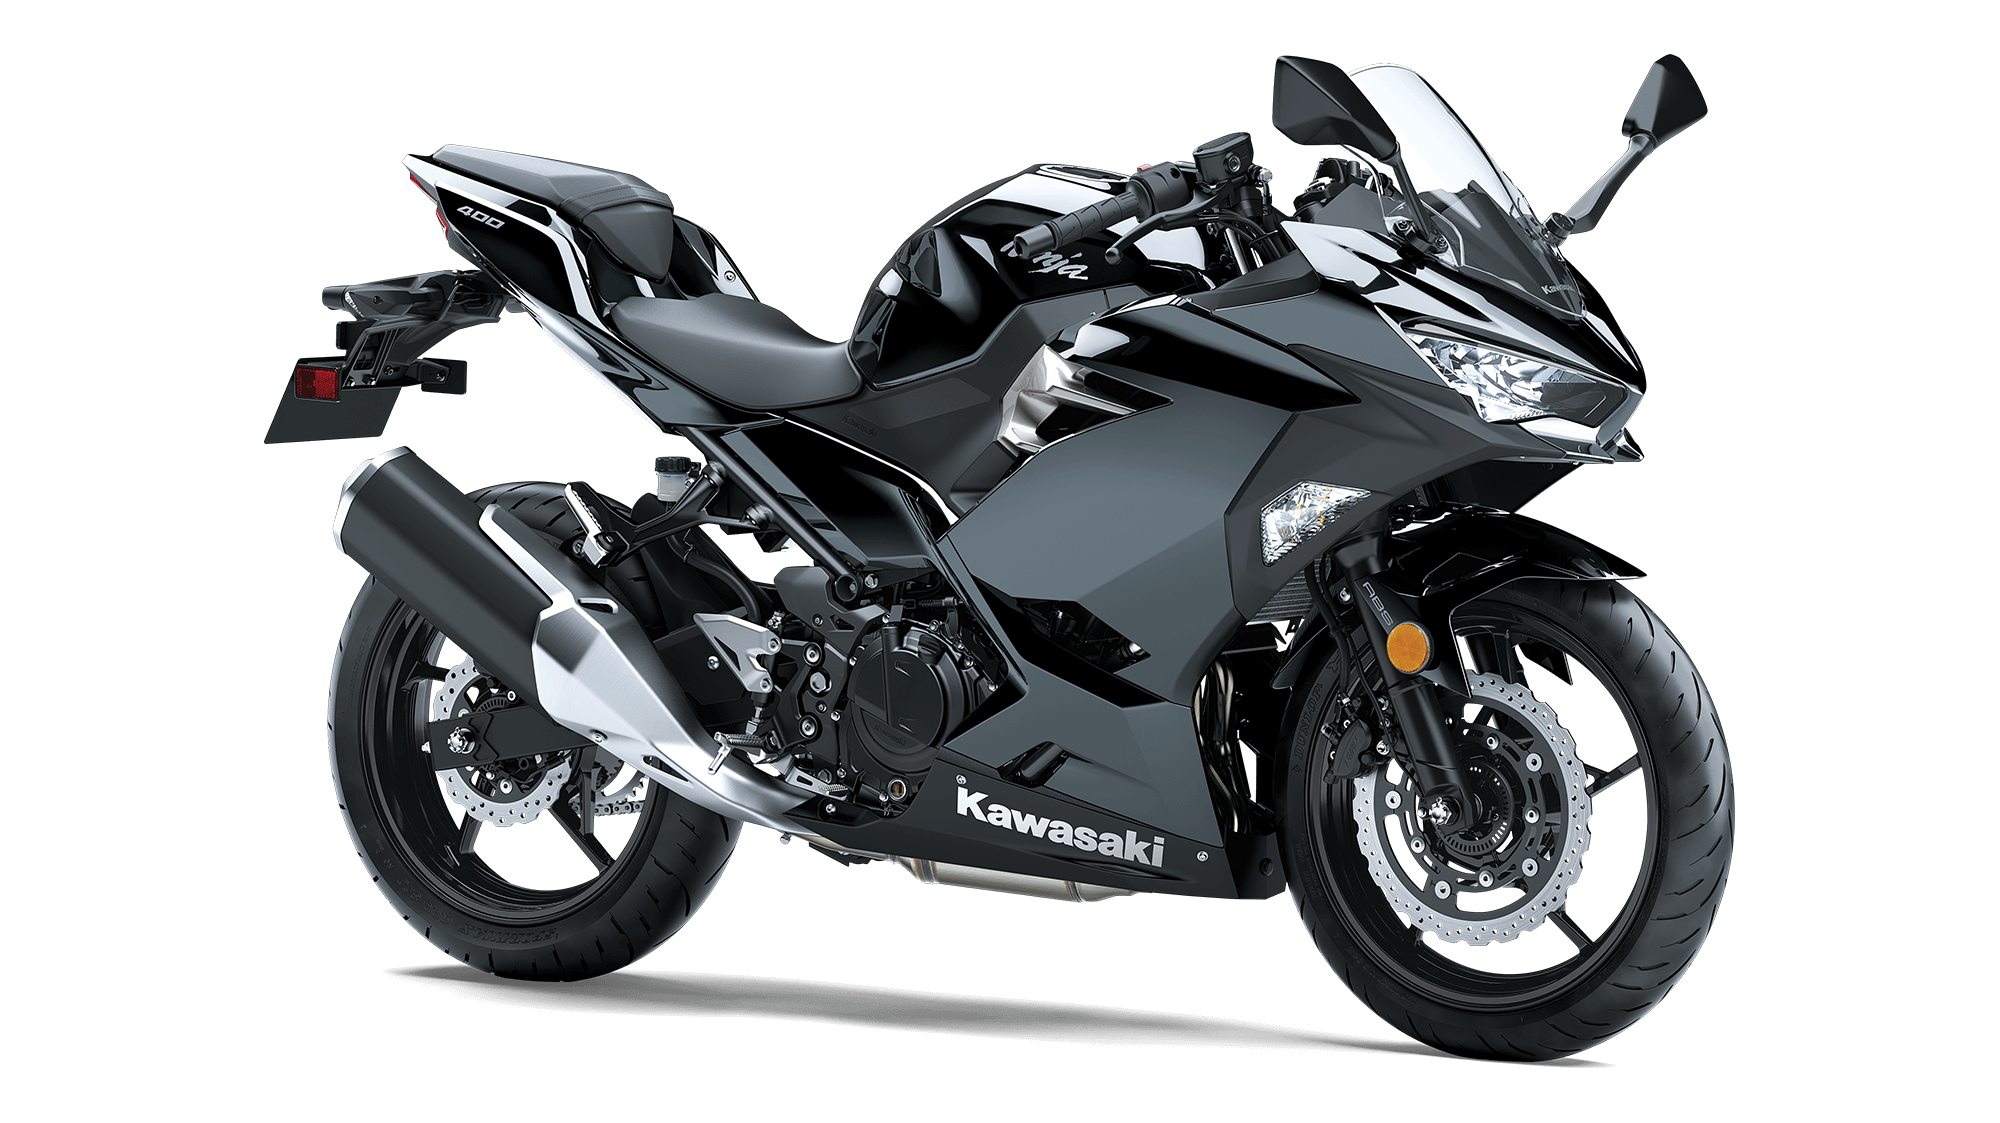 2019 Ninja 400 Abs Ninja Motorcycle By Kawasaki